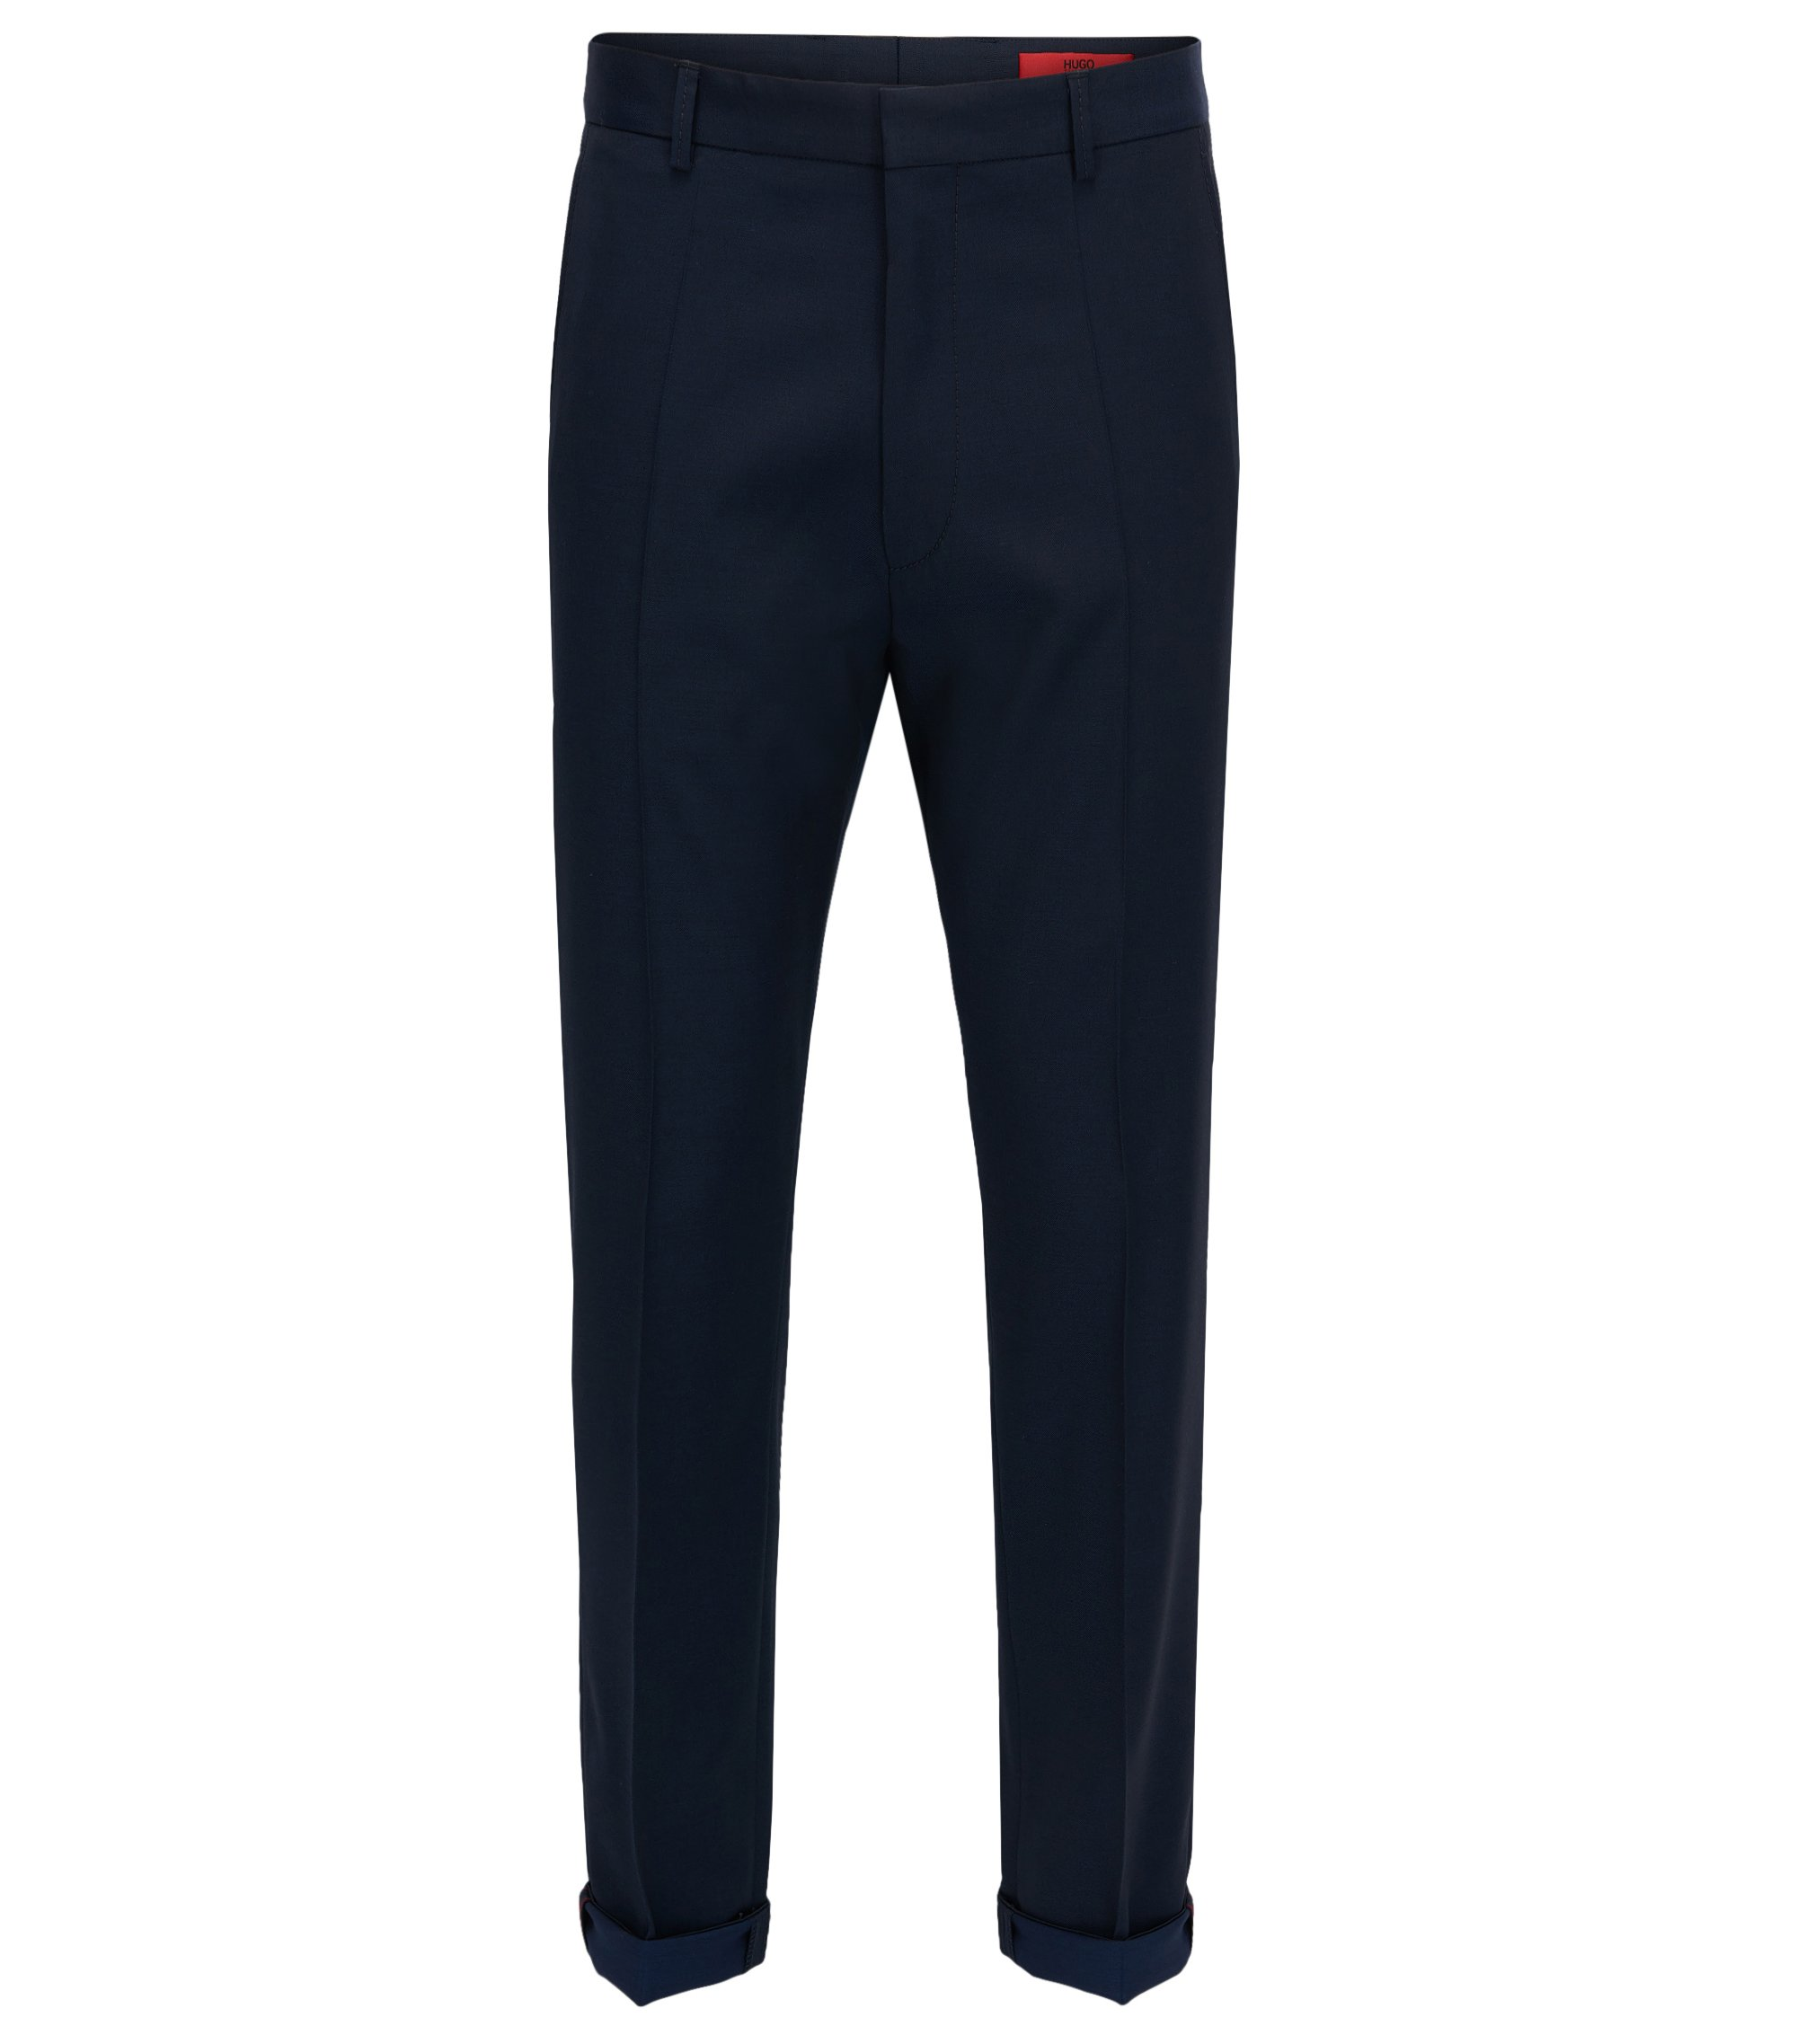 Virgin Wool Dress Pant, Extra Slim Fit | Hendris, Dark Blue